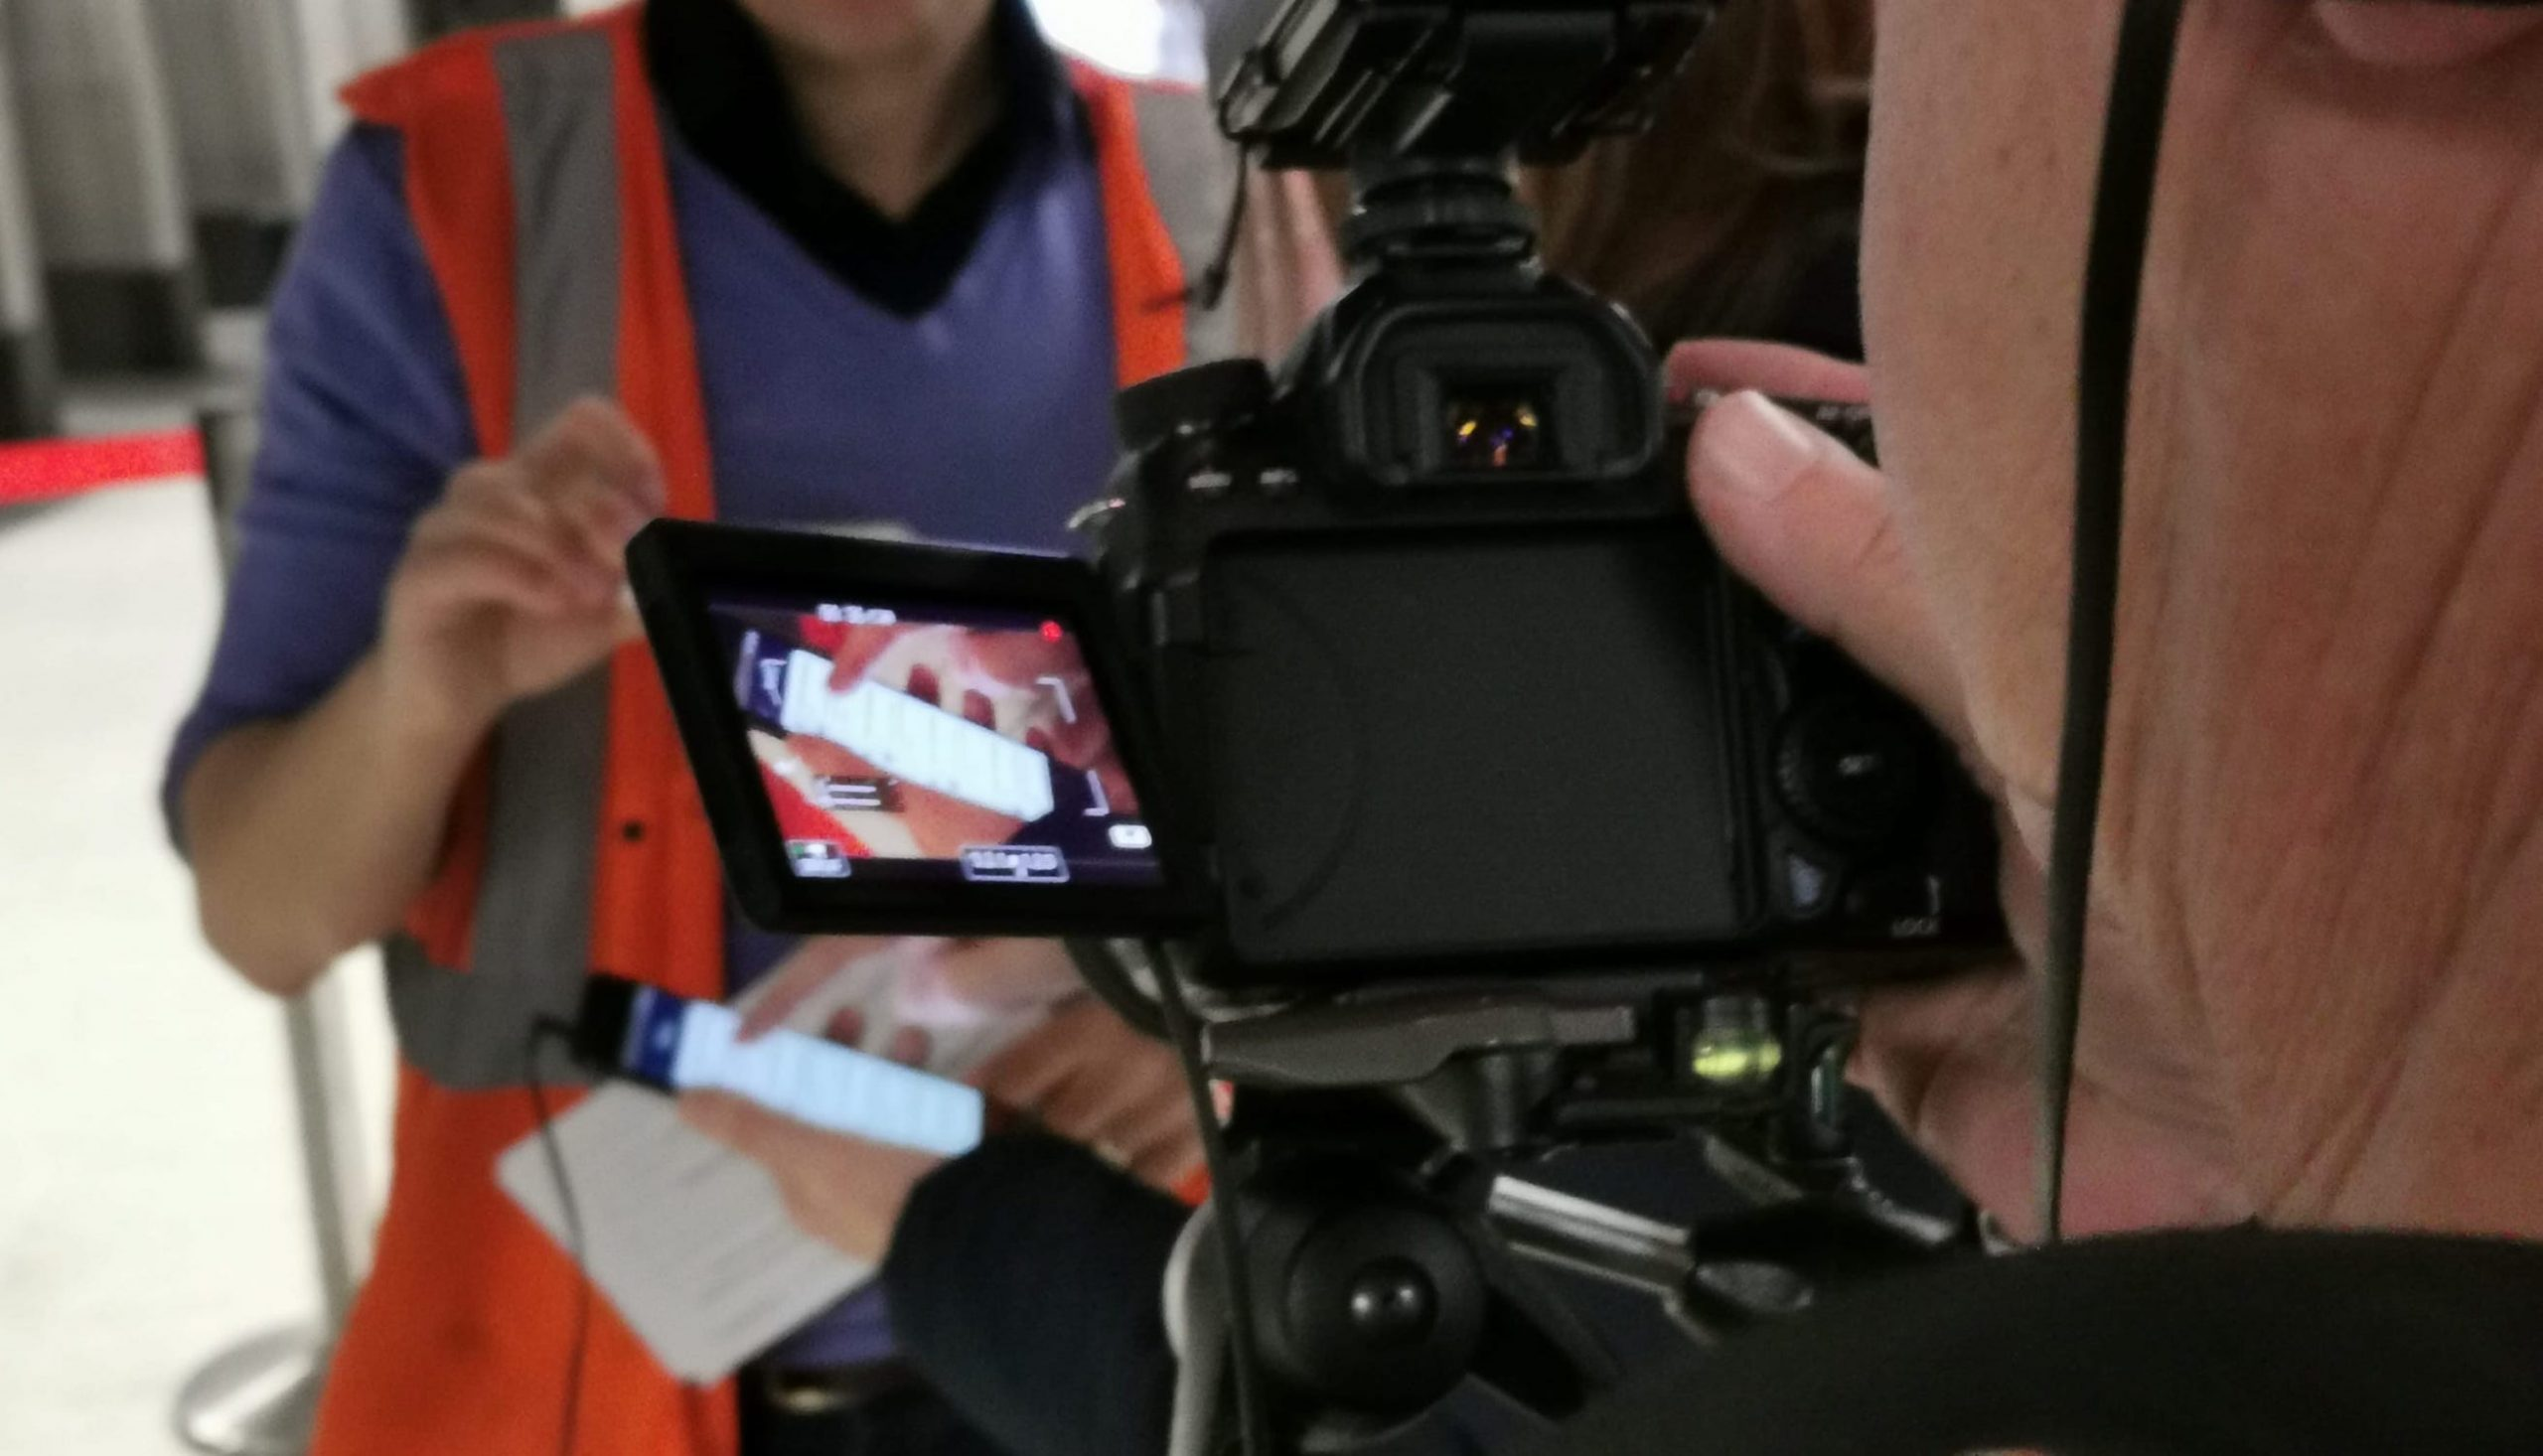 View through a digital camera at a person holding a phone. People in orange hi-vis vests in the background.